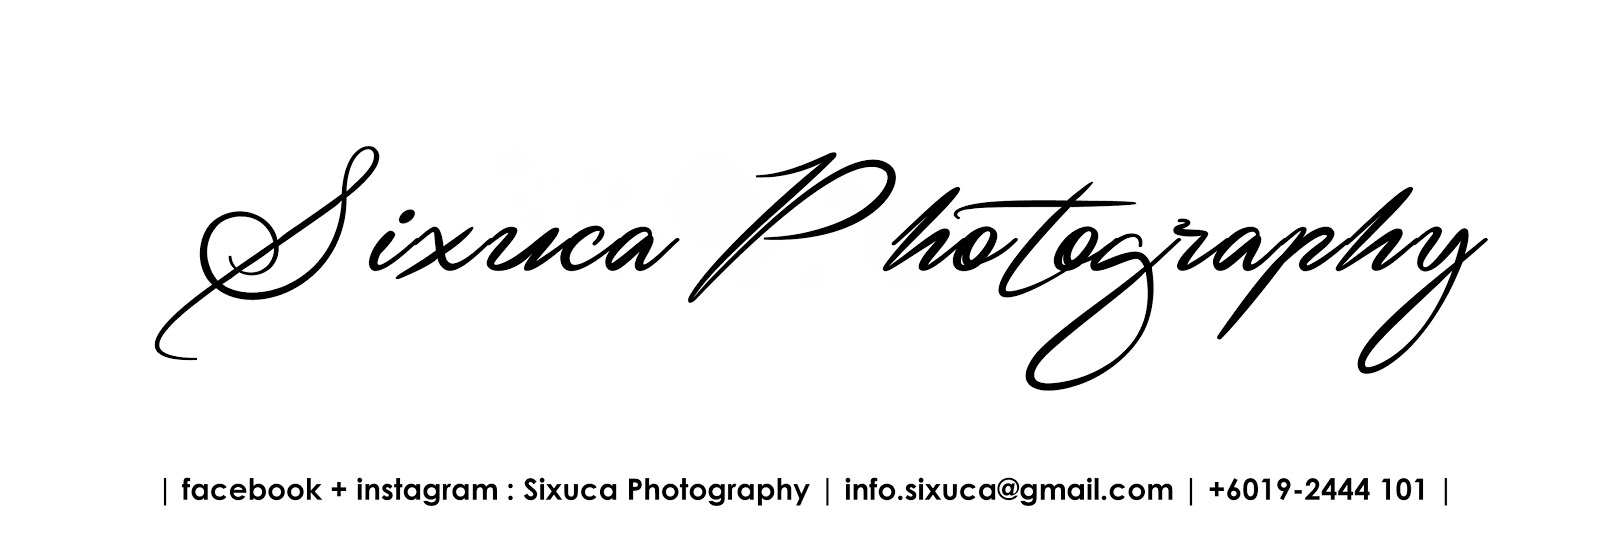 Sixuca Photography